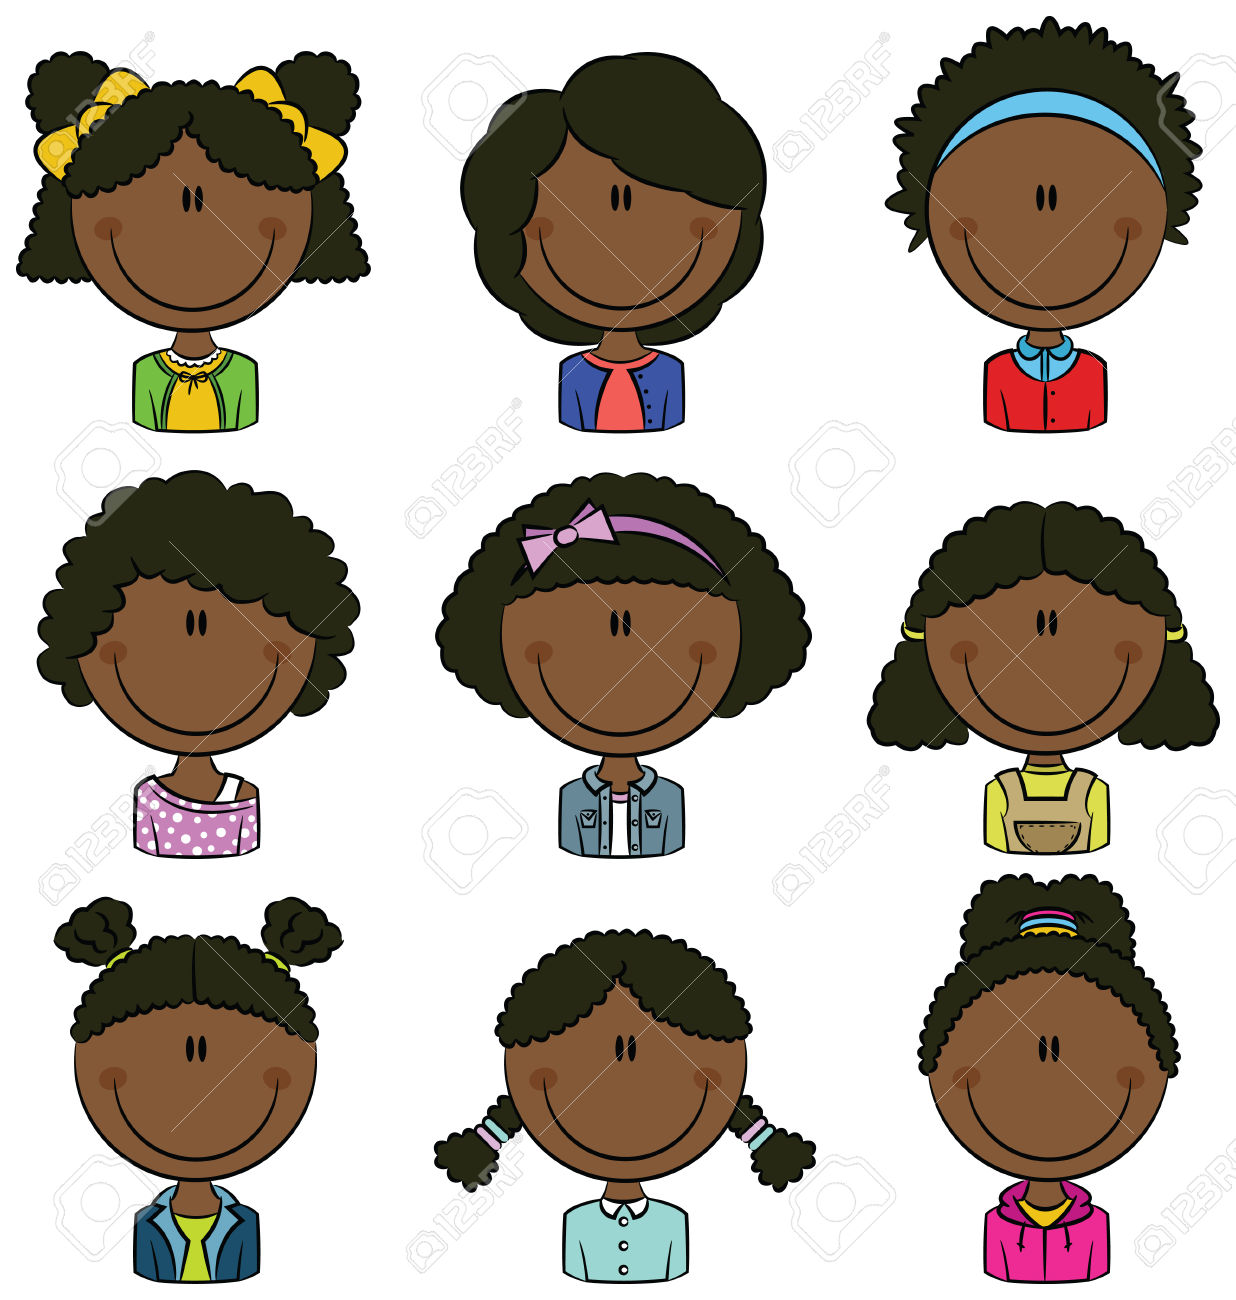 African American Clipart Black History.